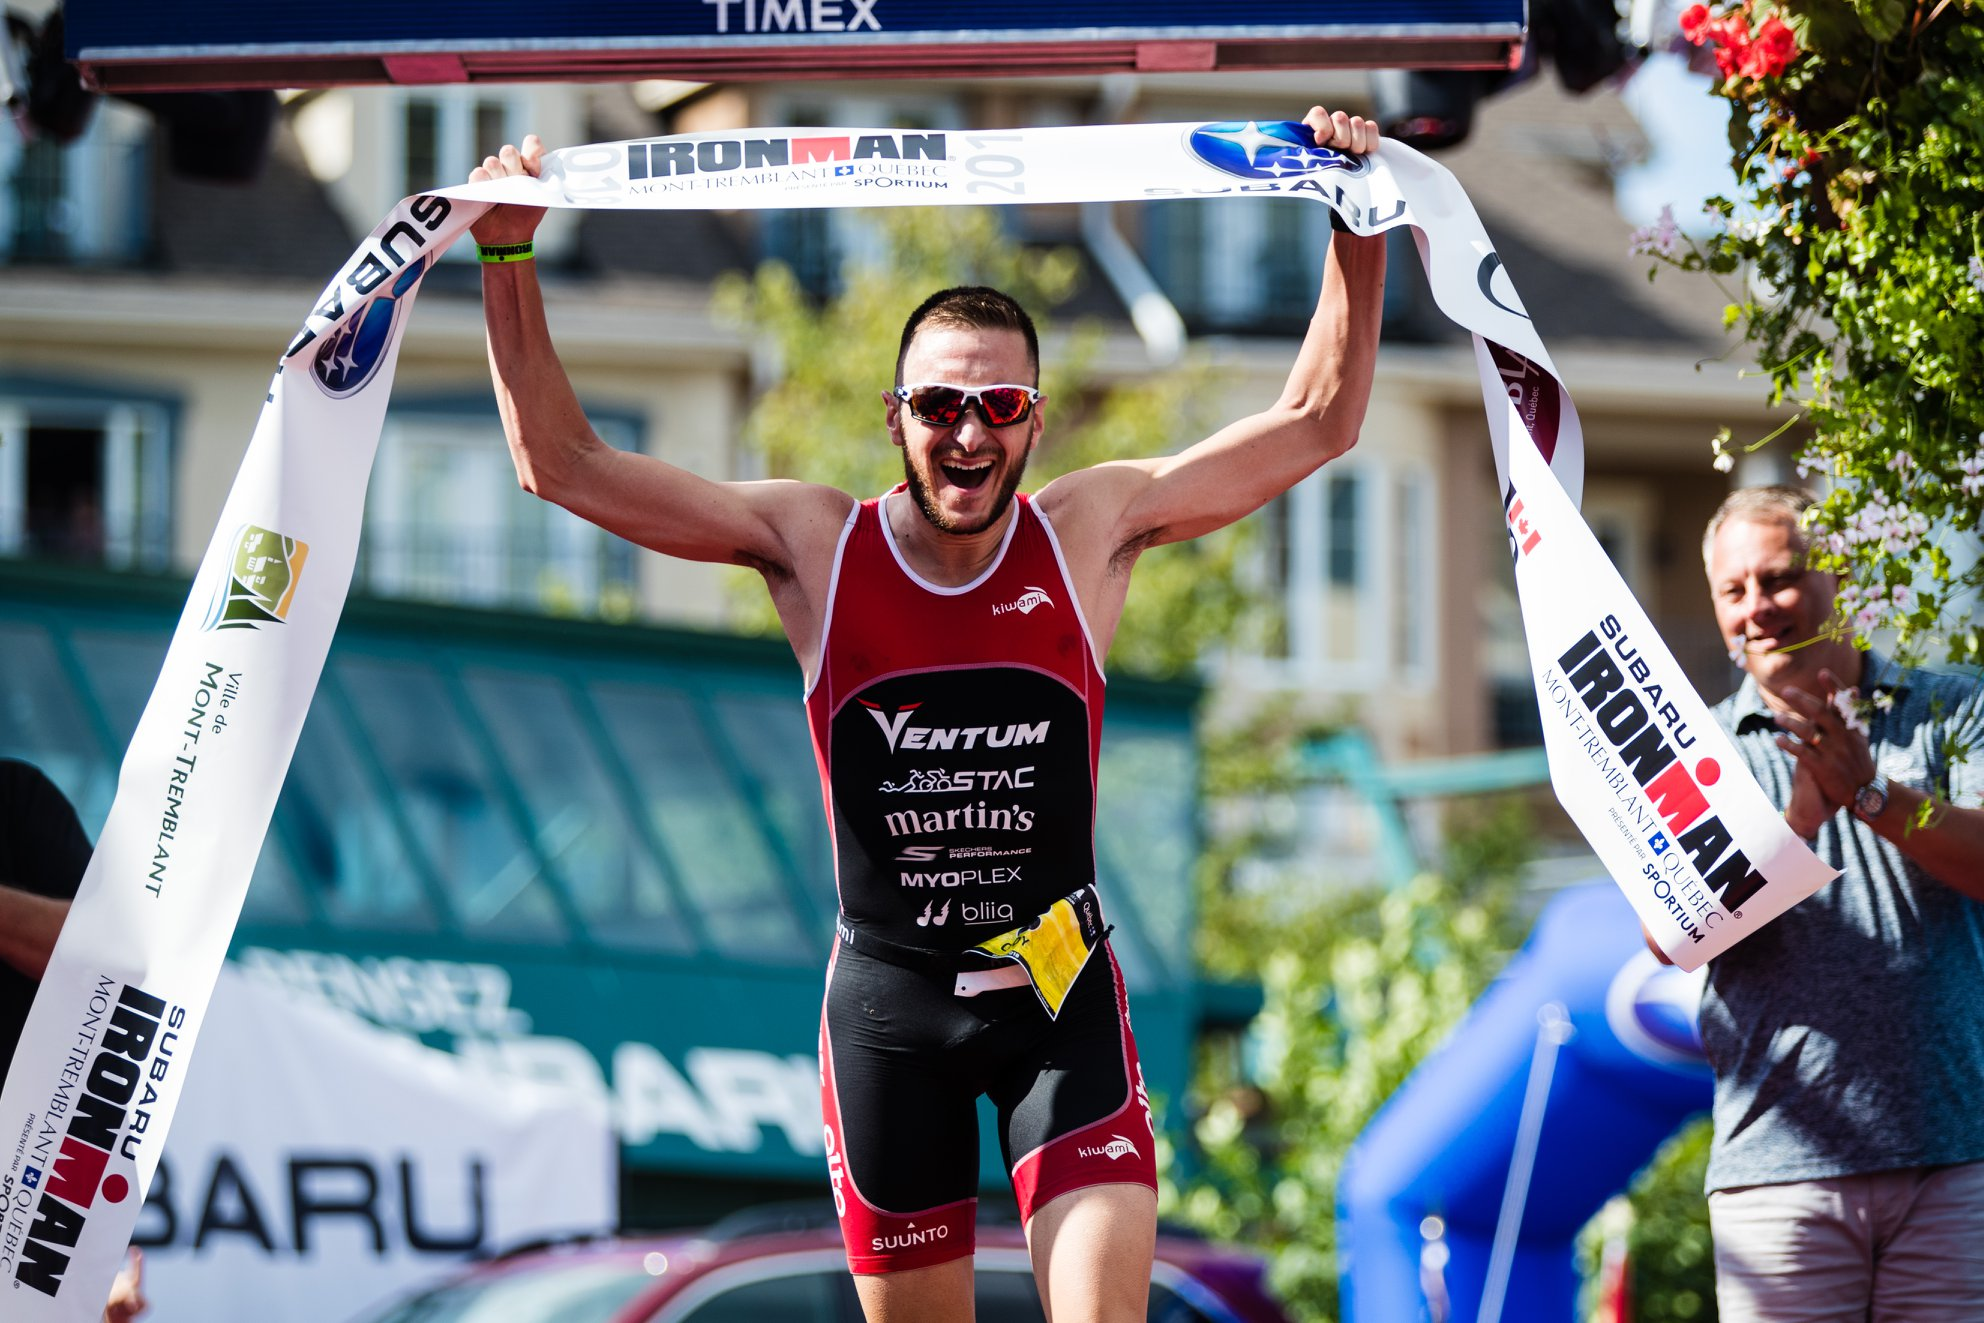 Coach_Terry_Wilson_Pursuit_of_The_Perfect_Race_IRONMAN_Mont_Tremblant_Cody_Beals_Tape.jpg